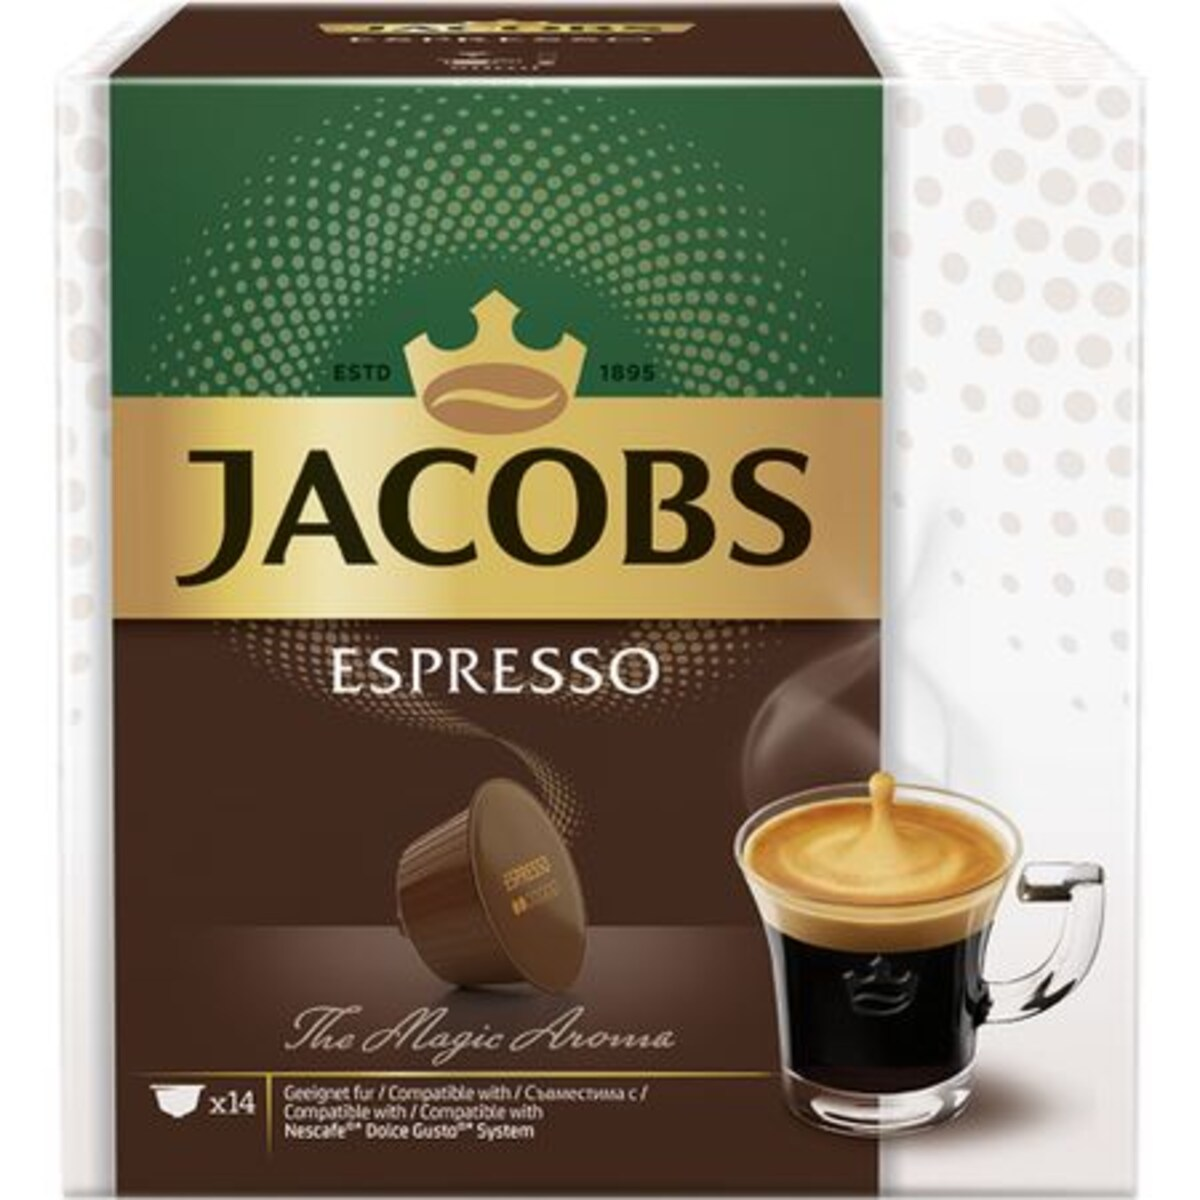 Jacobs Espresso капсули за Dolce Gusto кафемашина